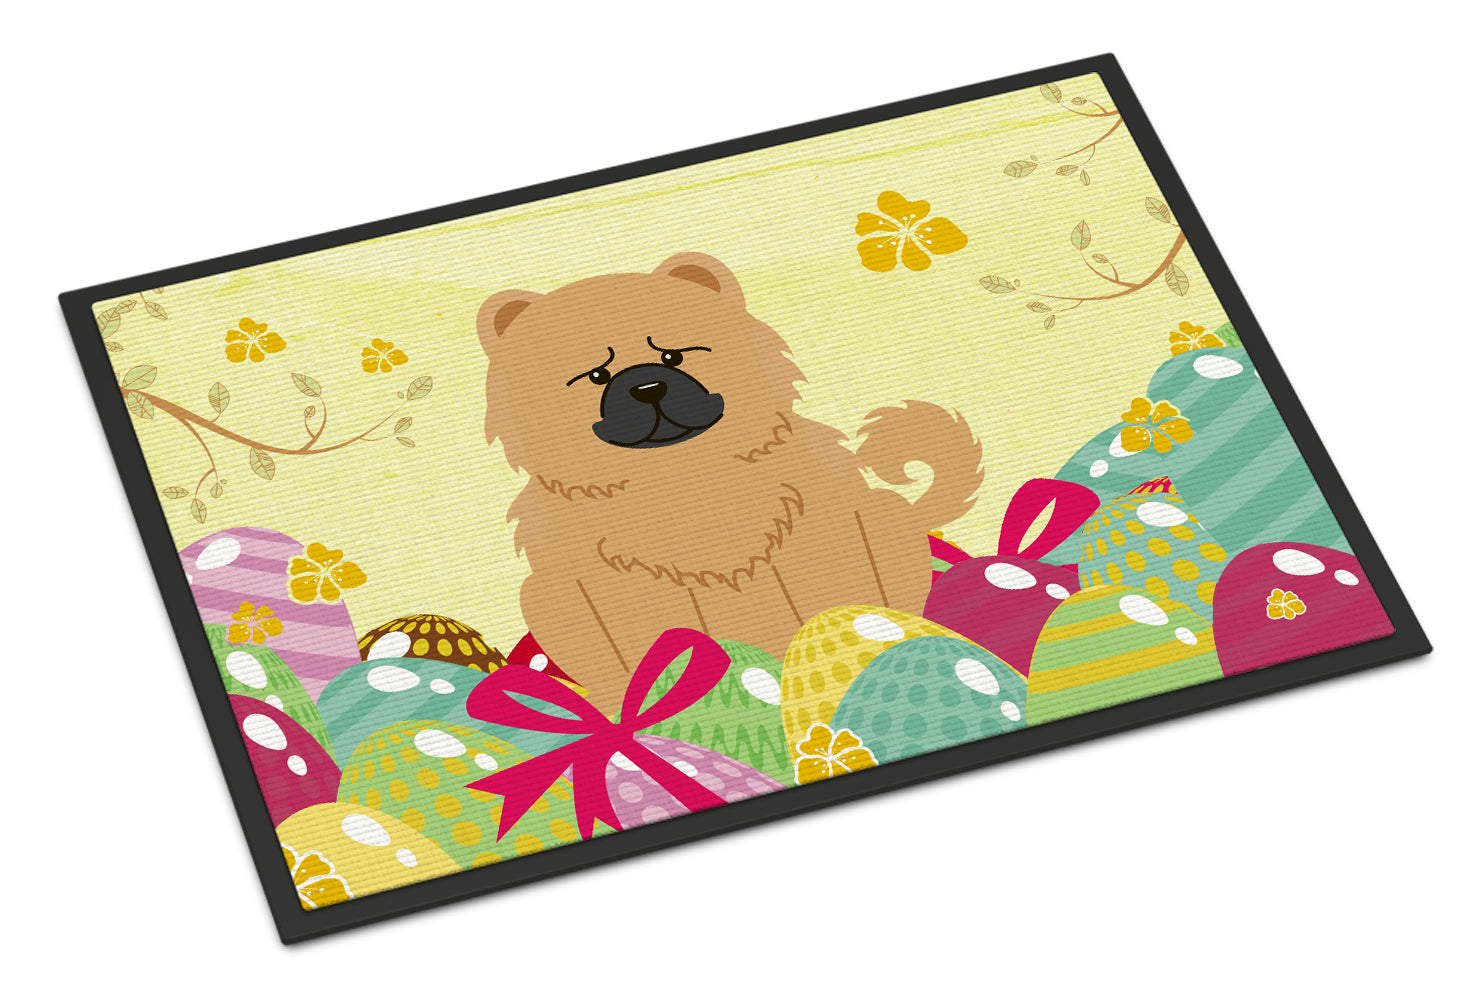 Easter Eggs Chow Chow Cream Indoor or Outdoor Mat 18x27 BB6144MAT by Caroline's Treasures